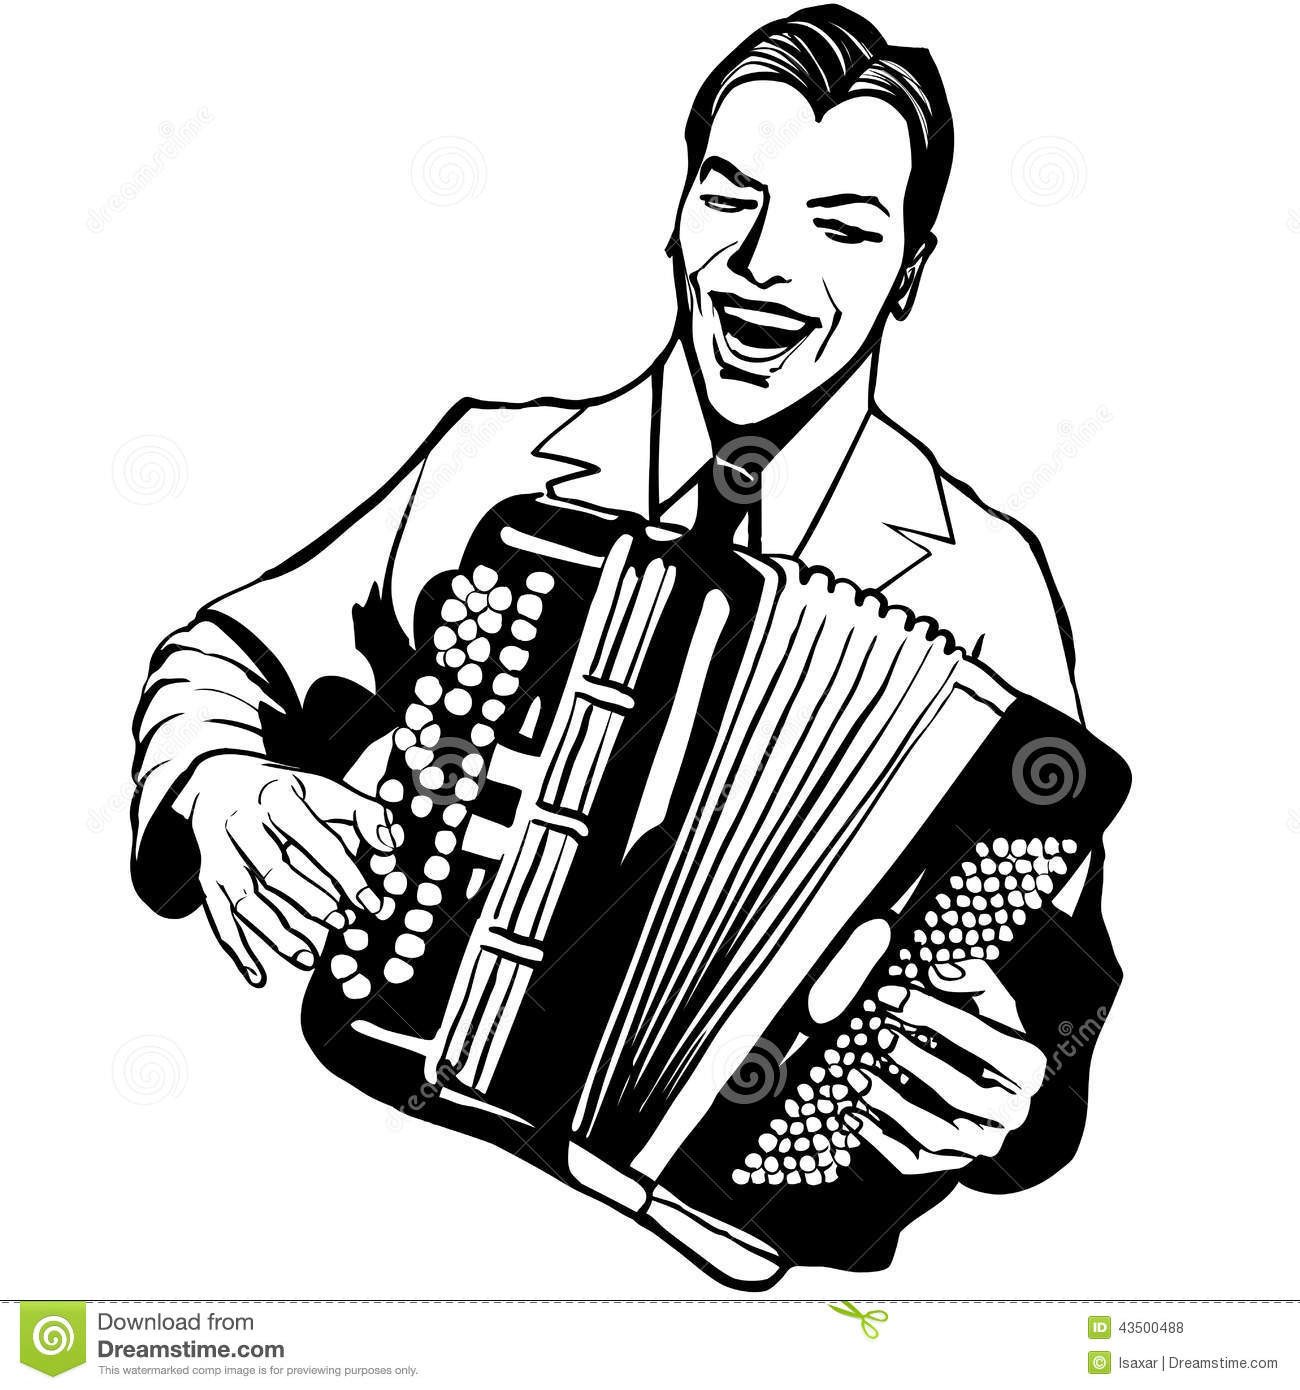 Accordion player clipart.